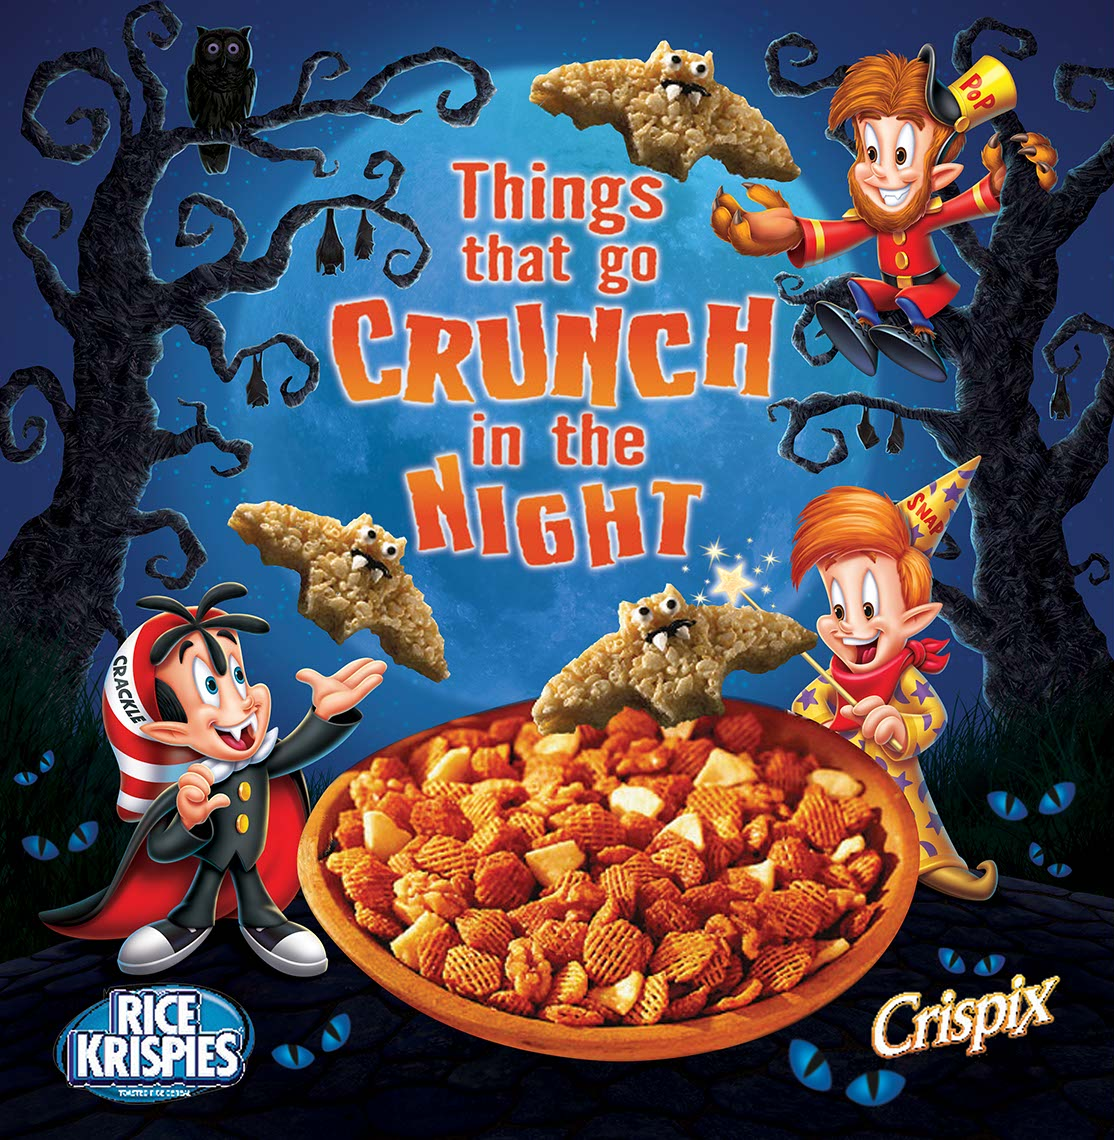 illustration-Cartoons & Characters_Rice krispies-snap-crackle_and_pop halloween-John Hom